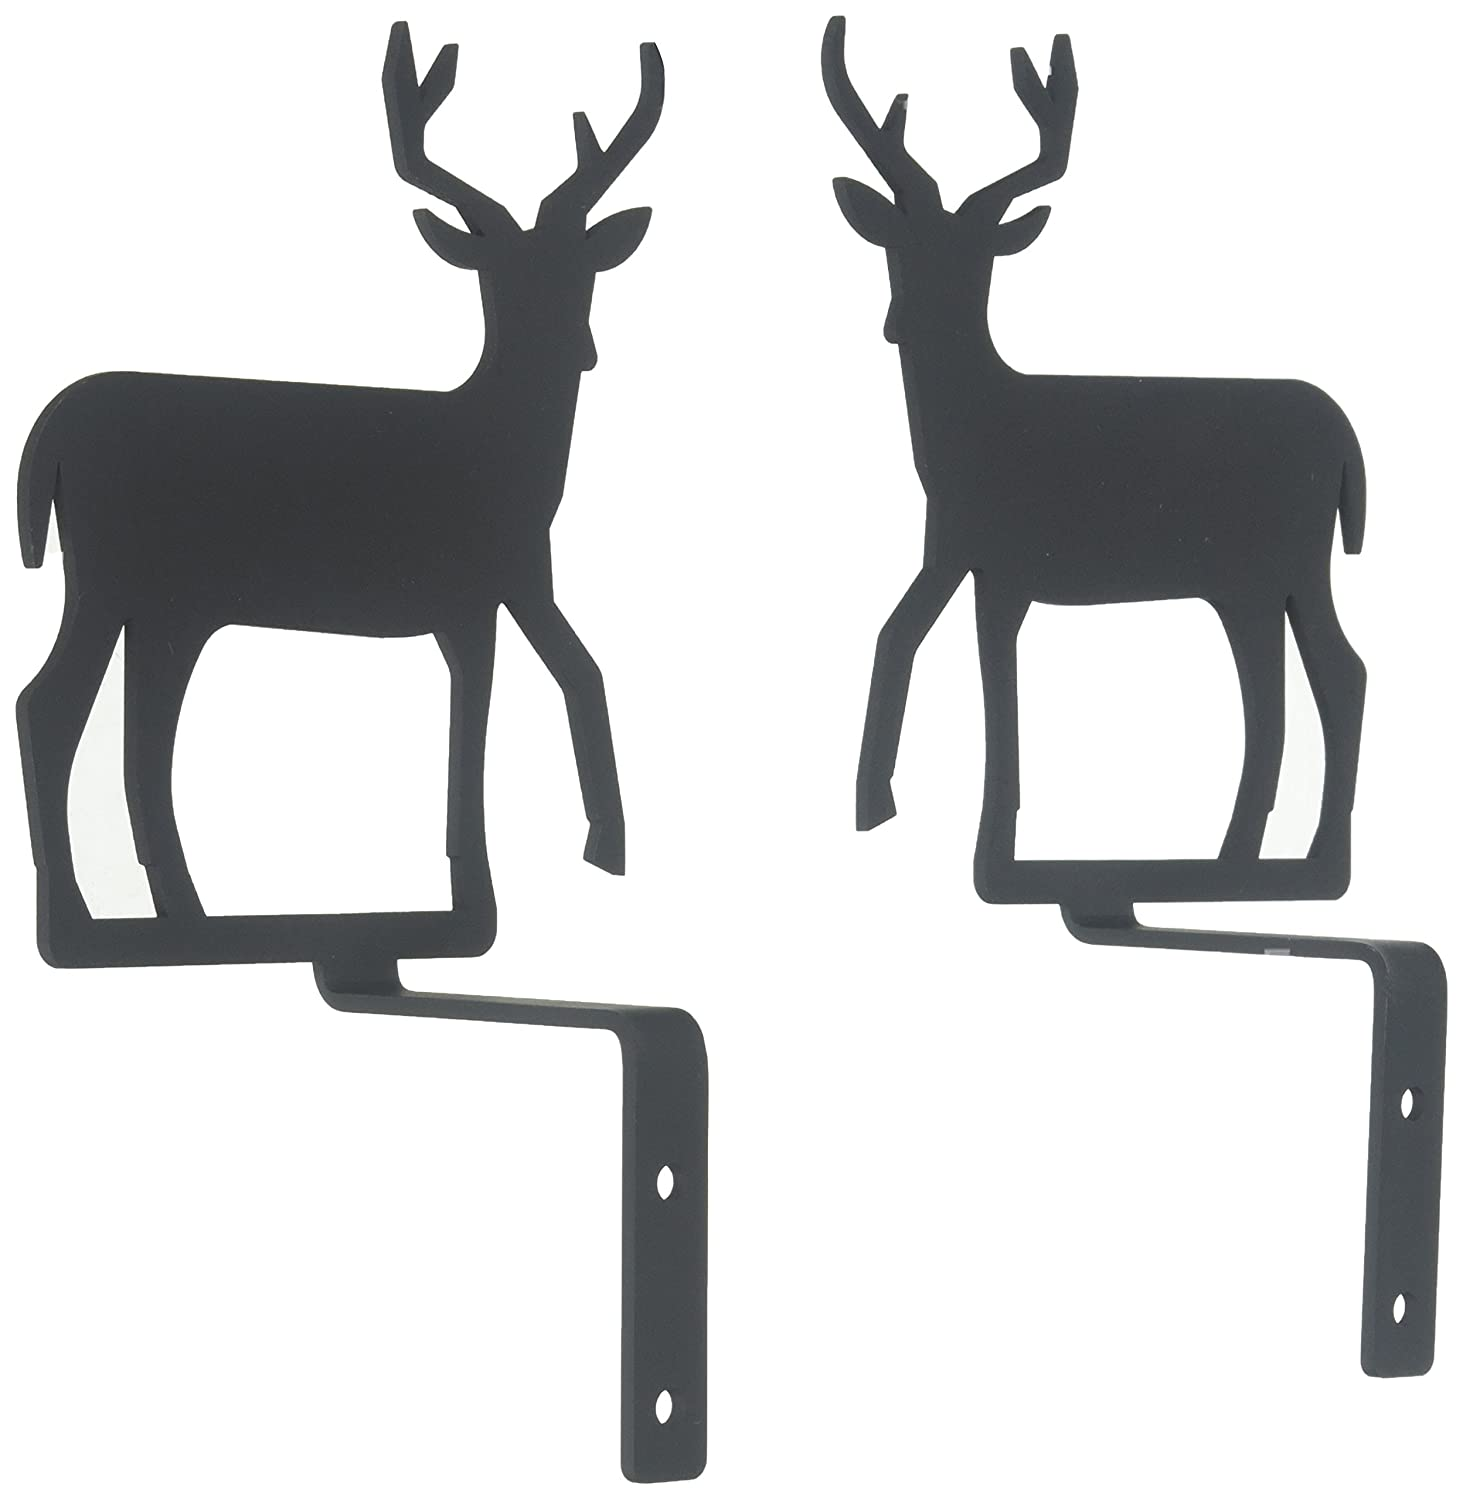 6.25 Inch Deer Curtain Swags Village Wrought Iron CUR-BRAC-XS